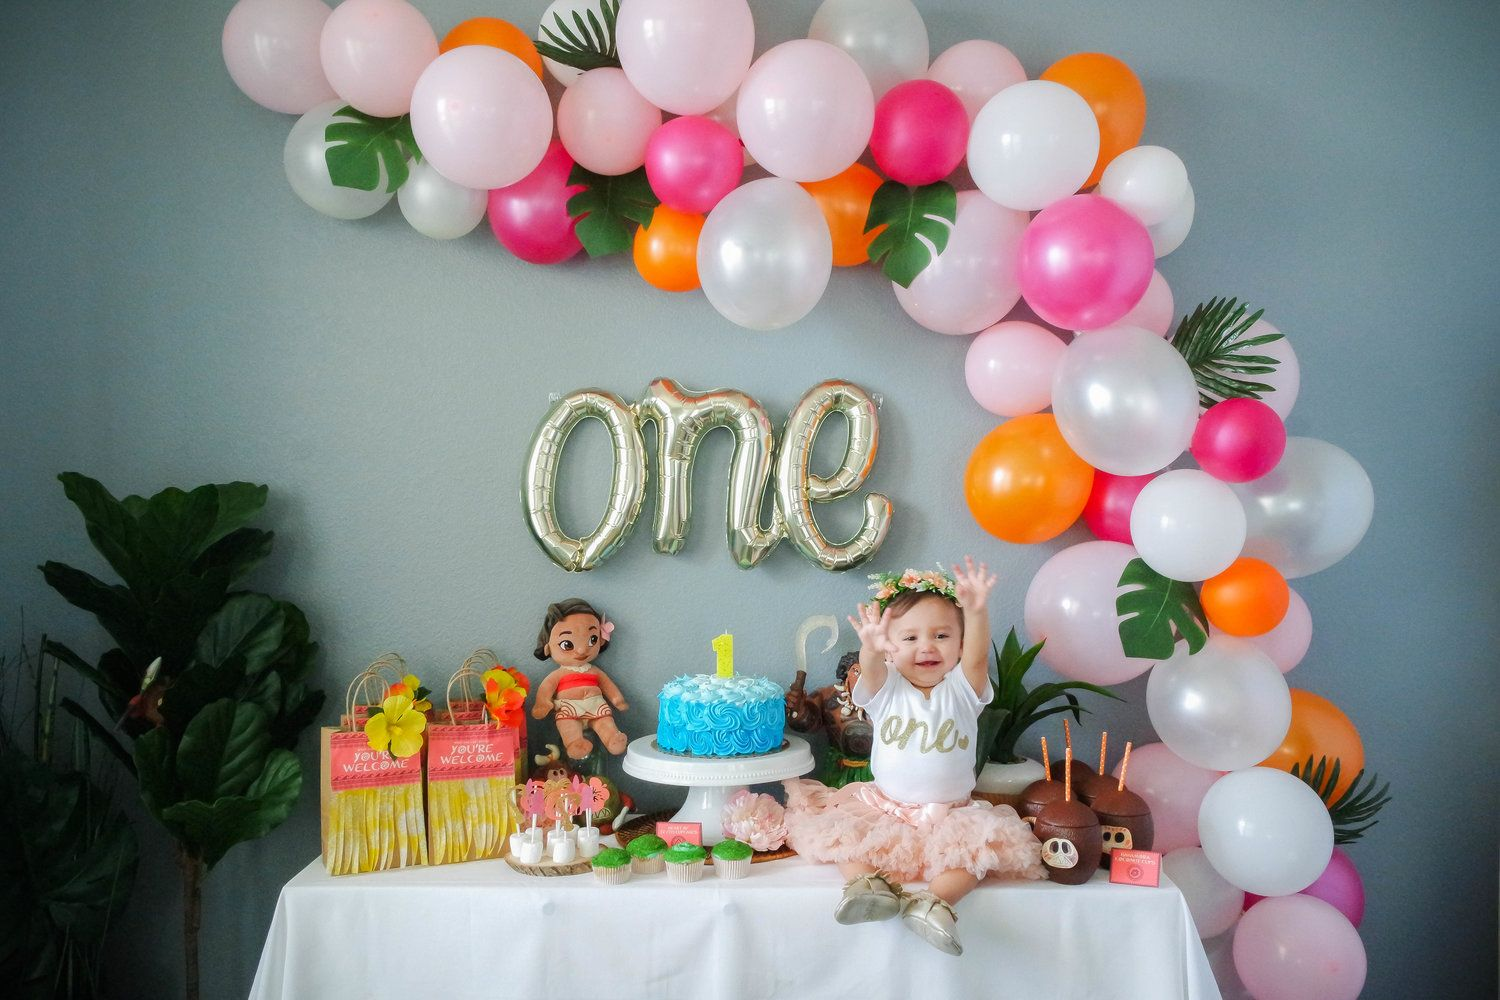 Moana Themed Birthday Party One Year Old Birthday Party Moana Birthday Party Theme Moana Birthday Party Girl Birthday Decorations